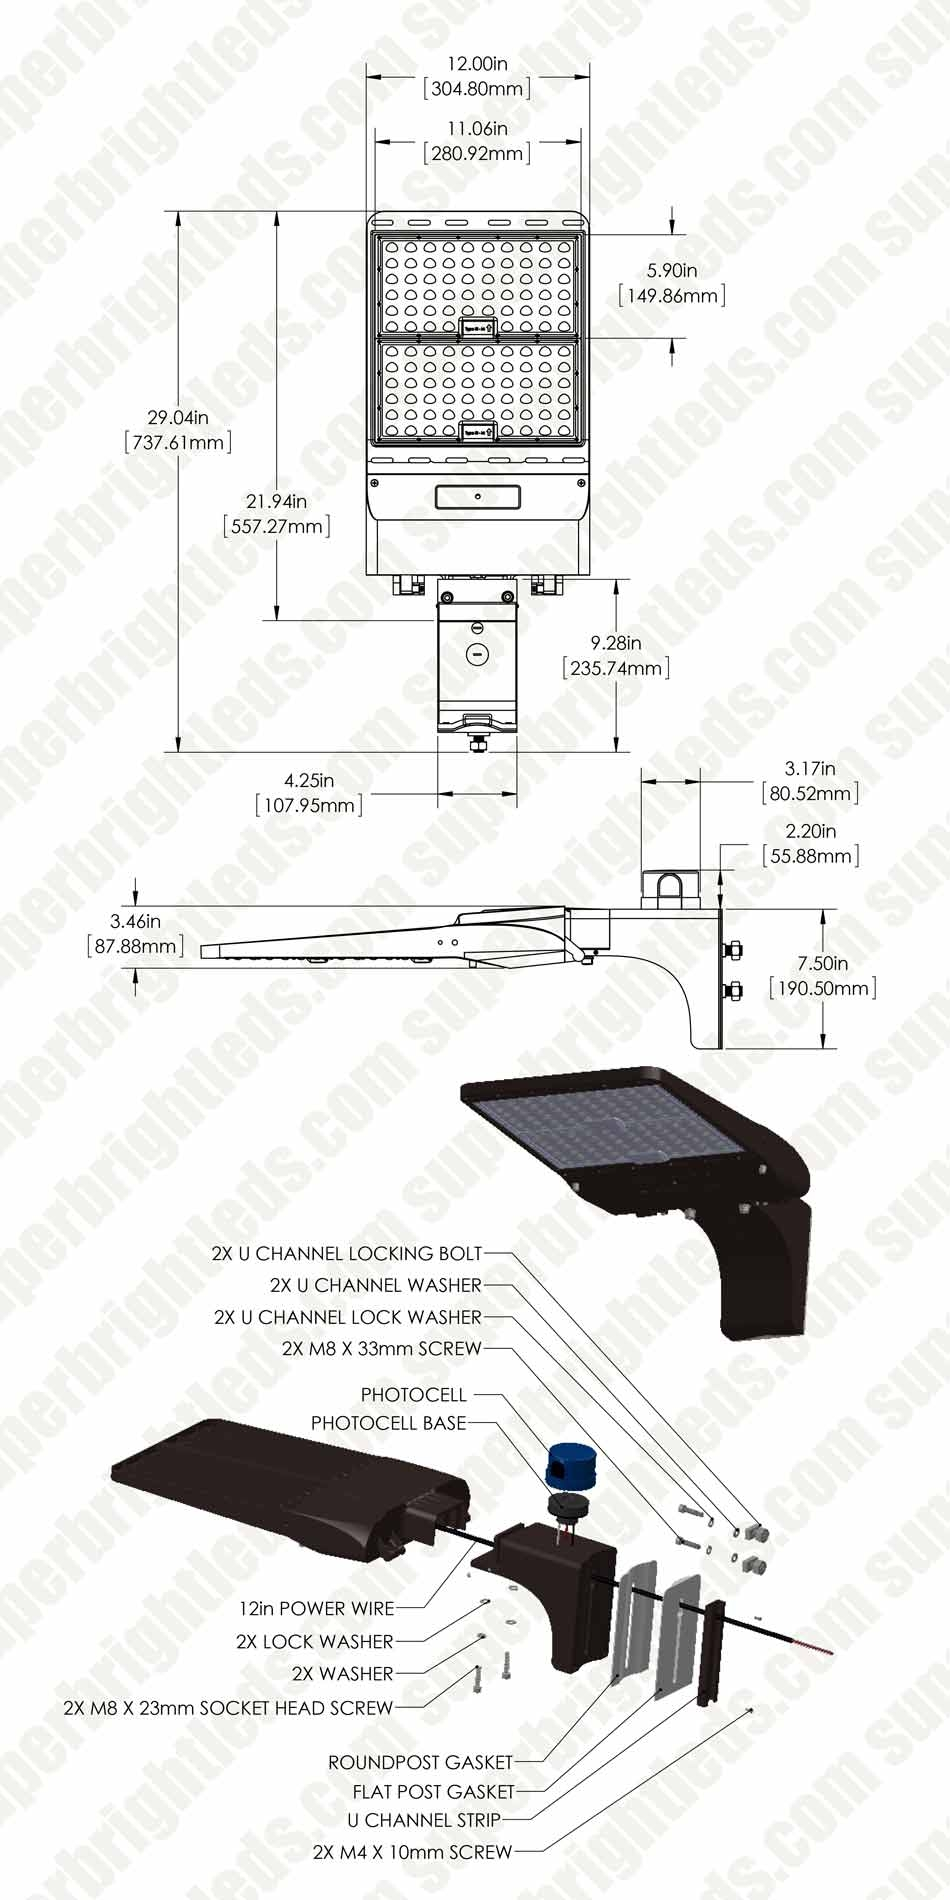 300W LED Parking Lot/Shoebox Area Light w/ Optional Photocell - 42,000 Lumens - 1,000W Metal Halide Equivalent - 5000K - Square/Round Fixed Arm Mount